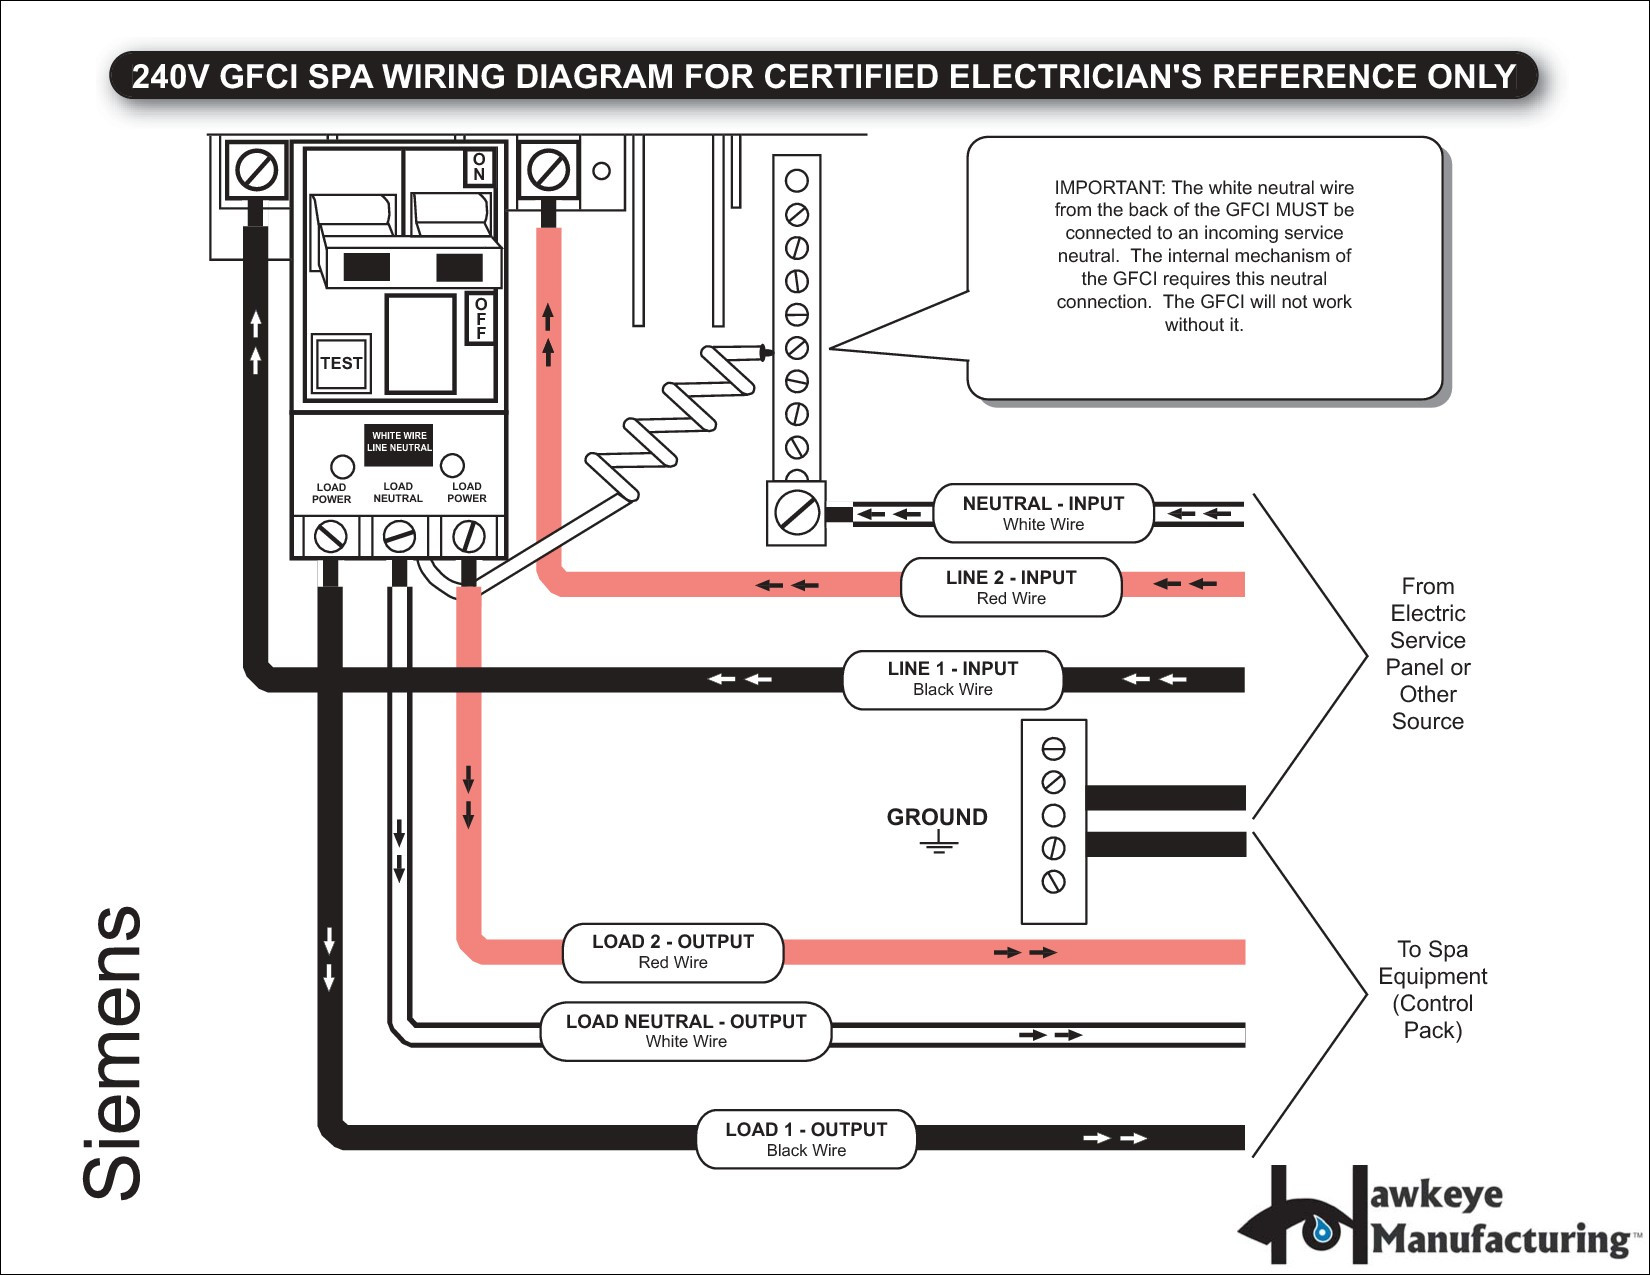 wiring diagram c neutral wire will be connected to wiring diagram rh friendsoffido co Wiring Multiple Receptacles Wiring Receptacles in Series